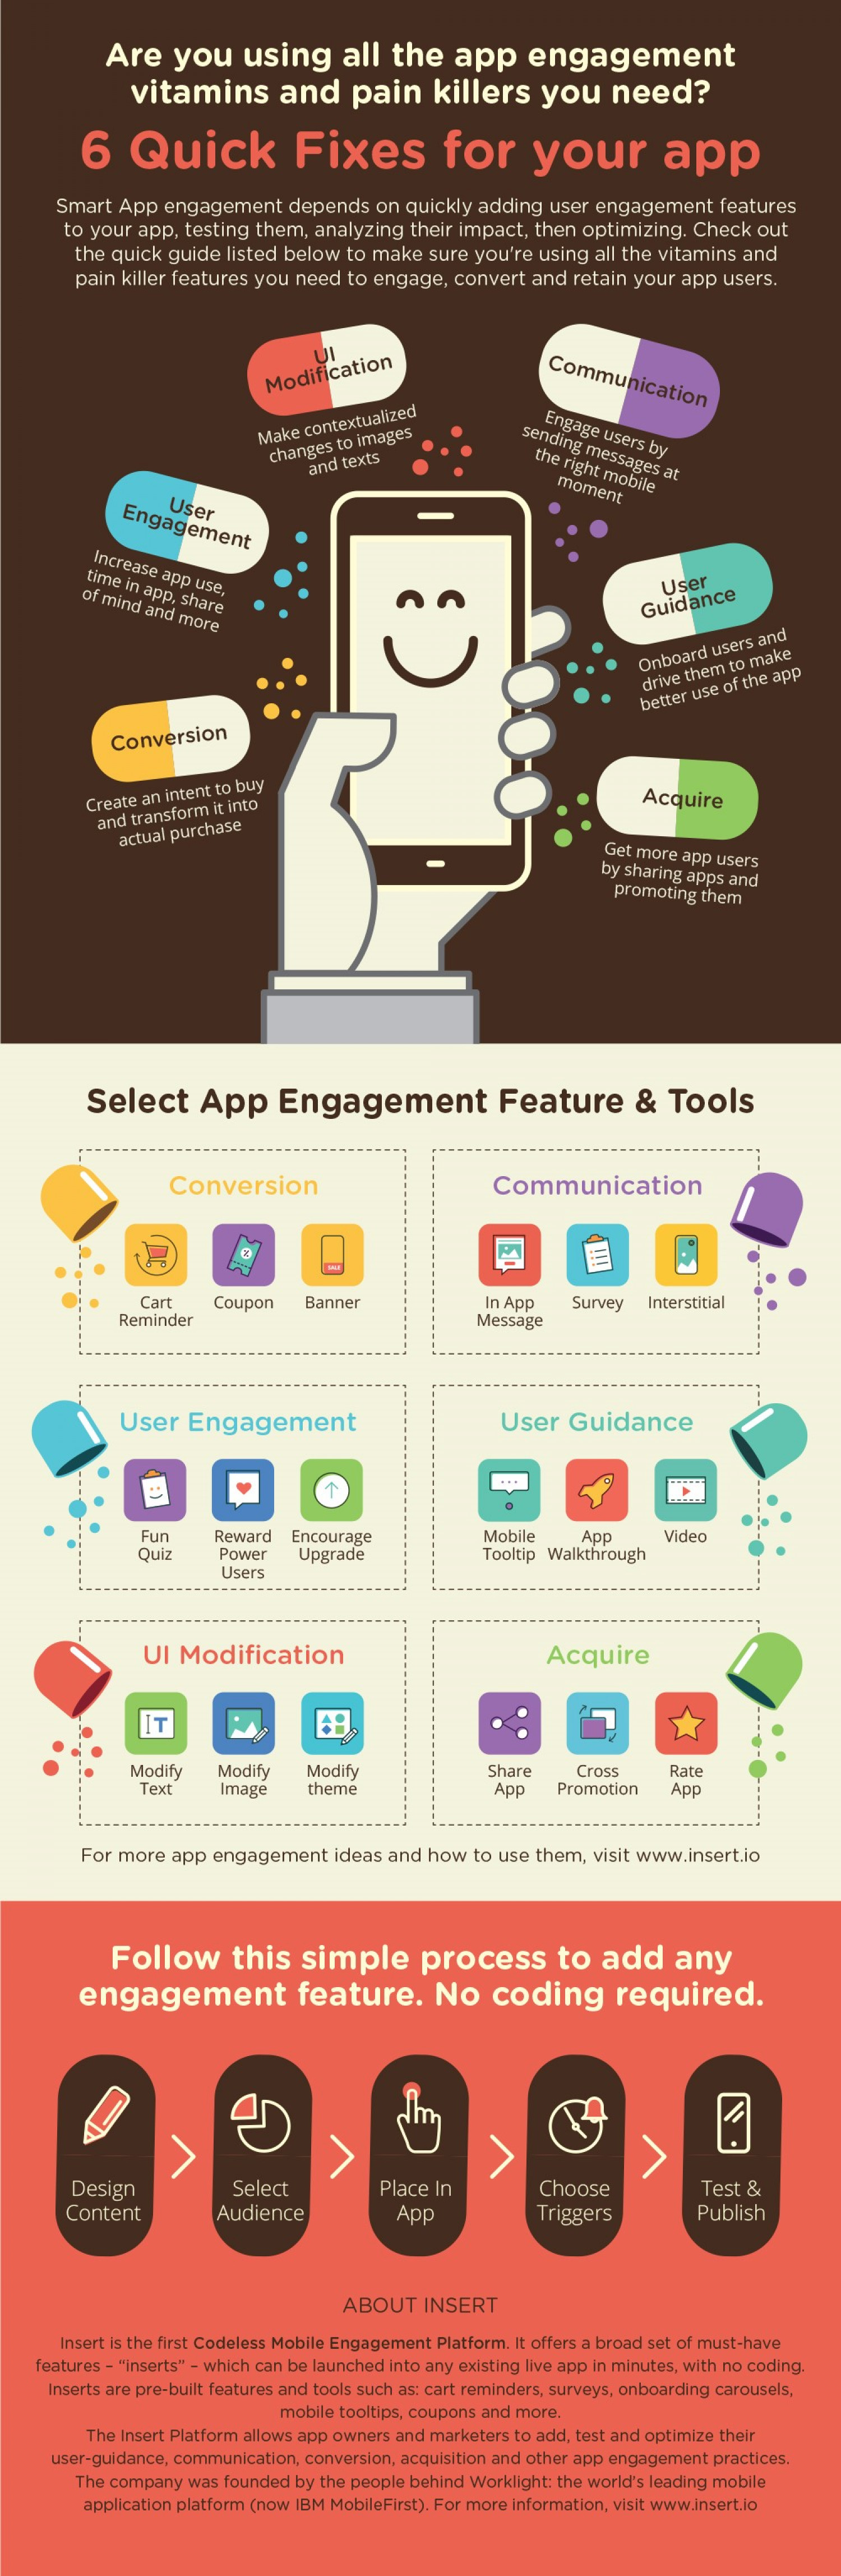 6 Quick Fixes for Your App Infographic